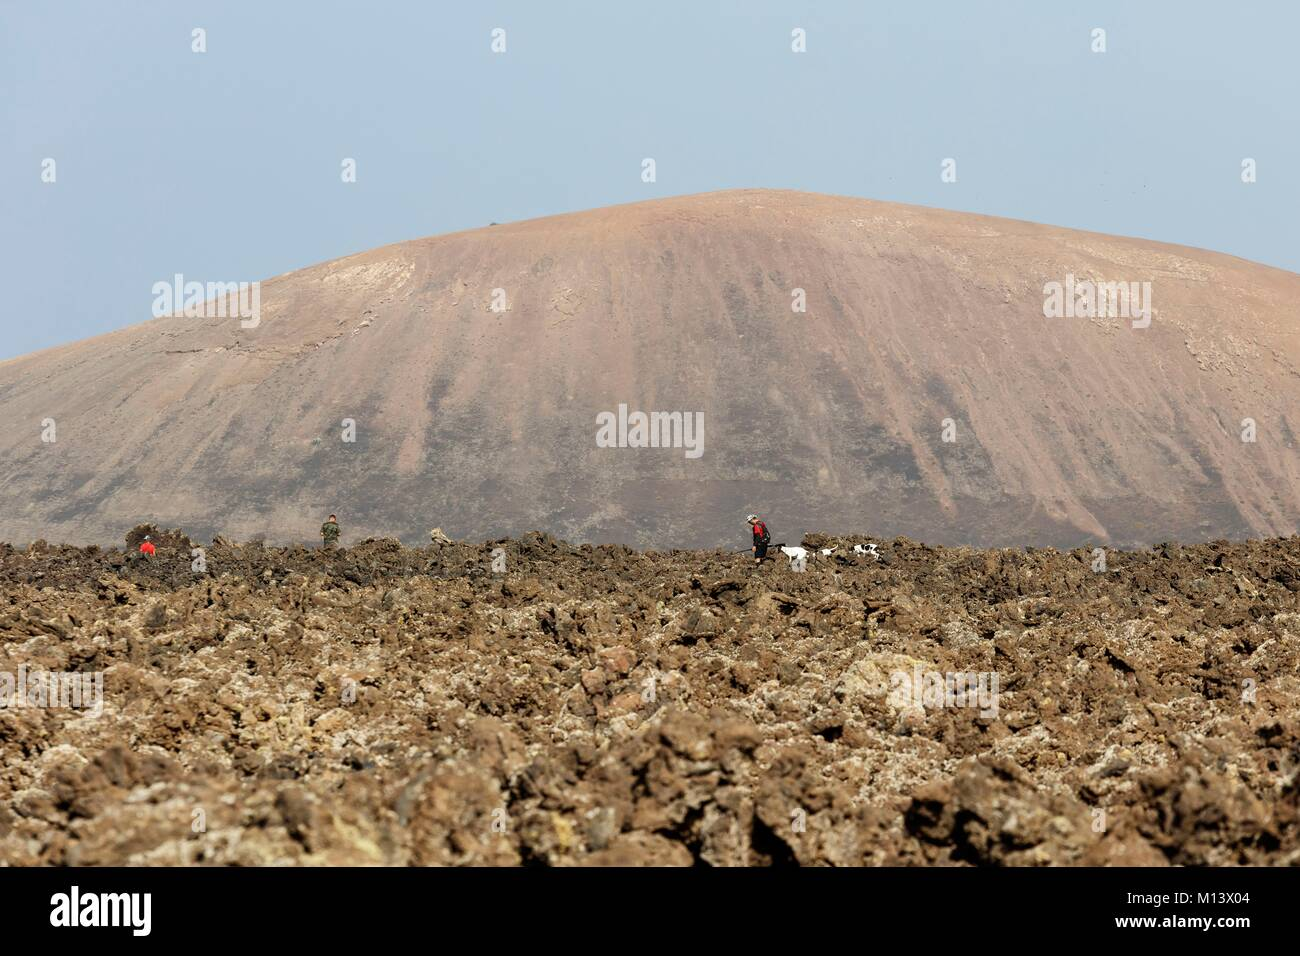 Spain, Canary Islands, Lanzarote Island, hunters and their dogs in a lava field - Stock Image